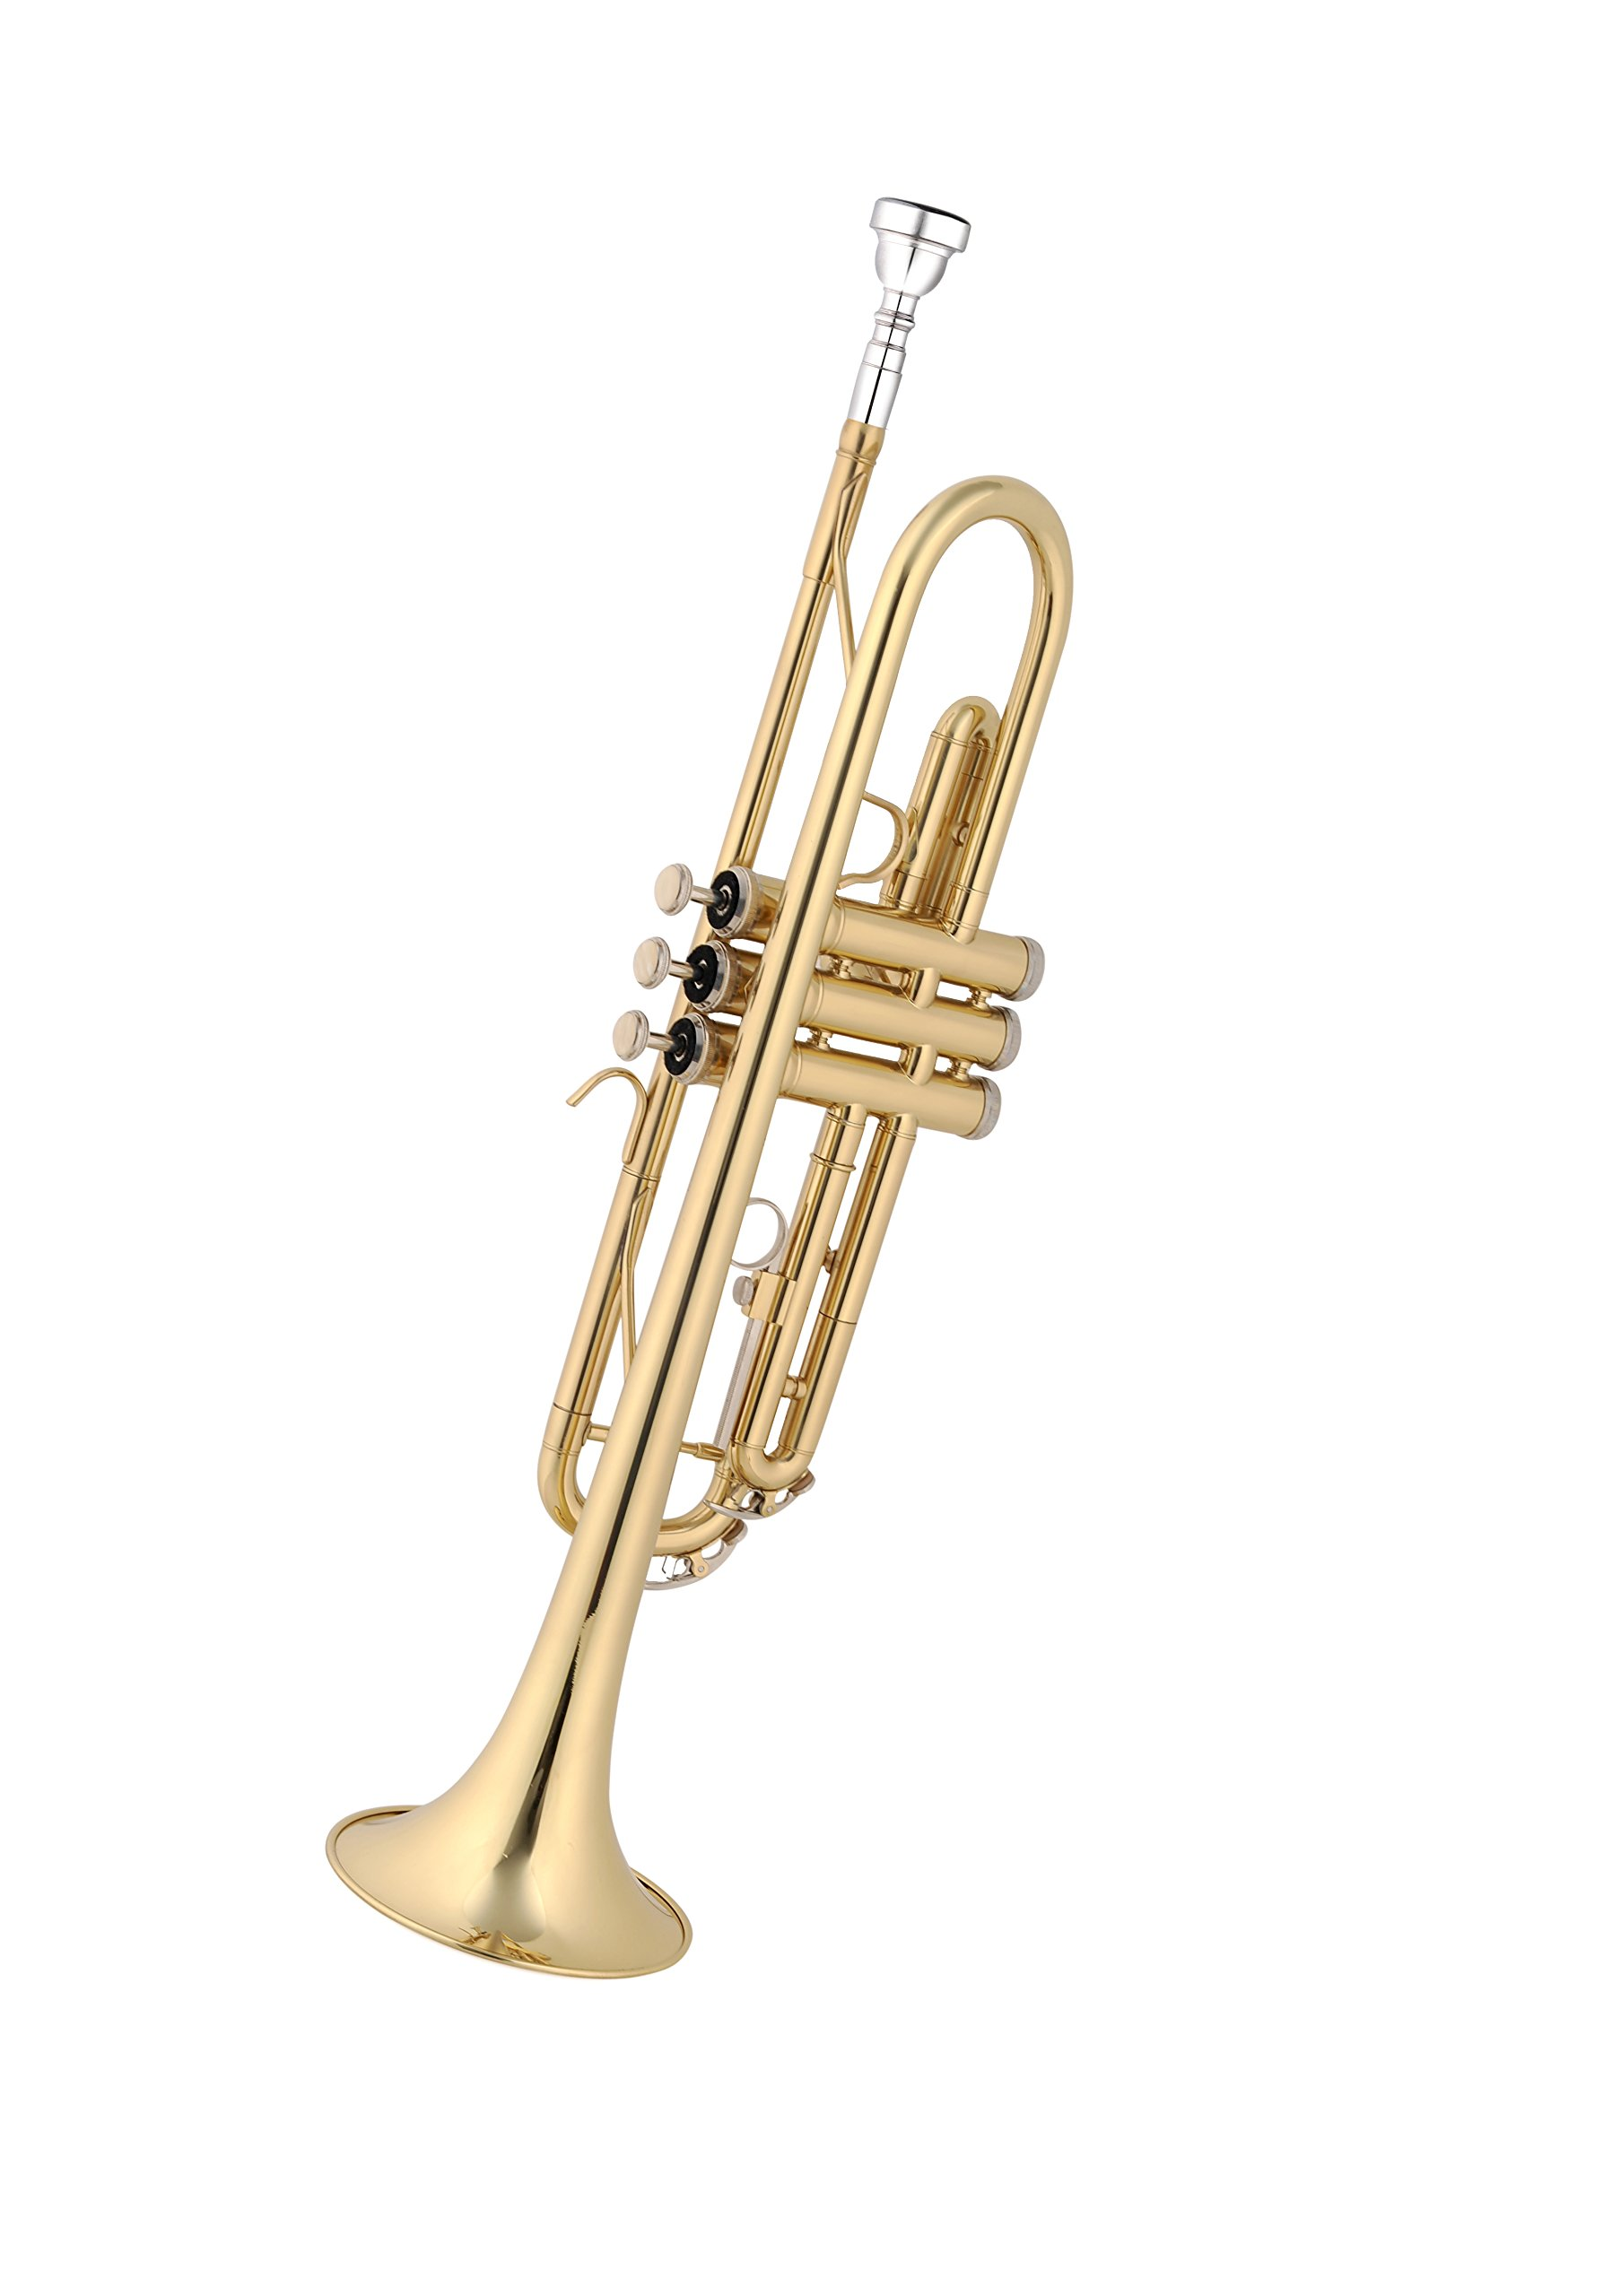 Aileen Lexington Gold Bb Key Student Model Trumpet Includes Hard Case, Cleaning Rod and Cloth, Gloves by Aileen (Image #2)